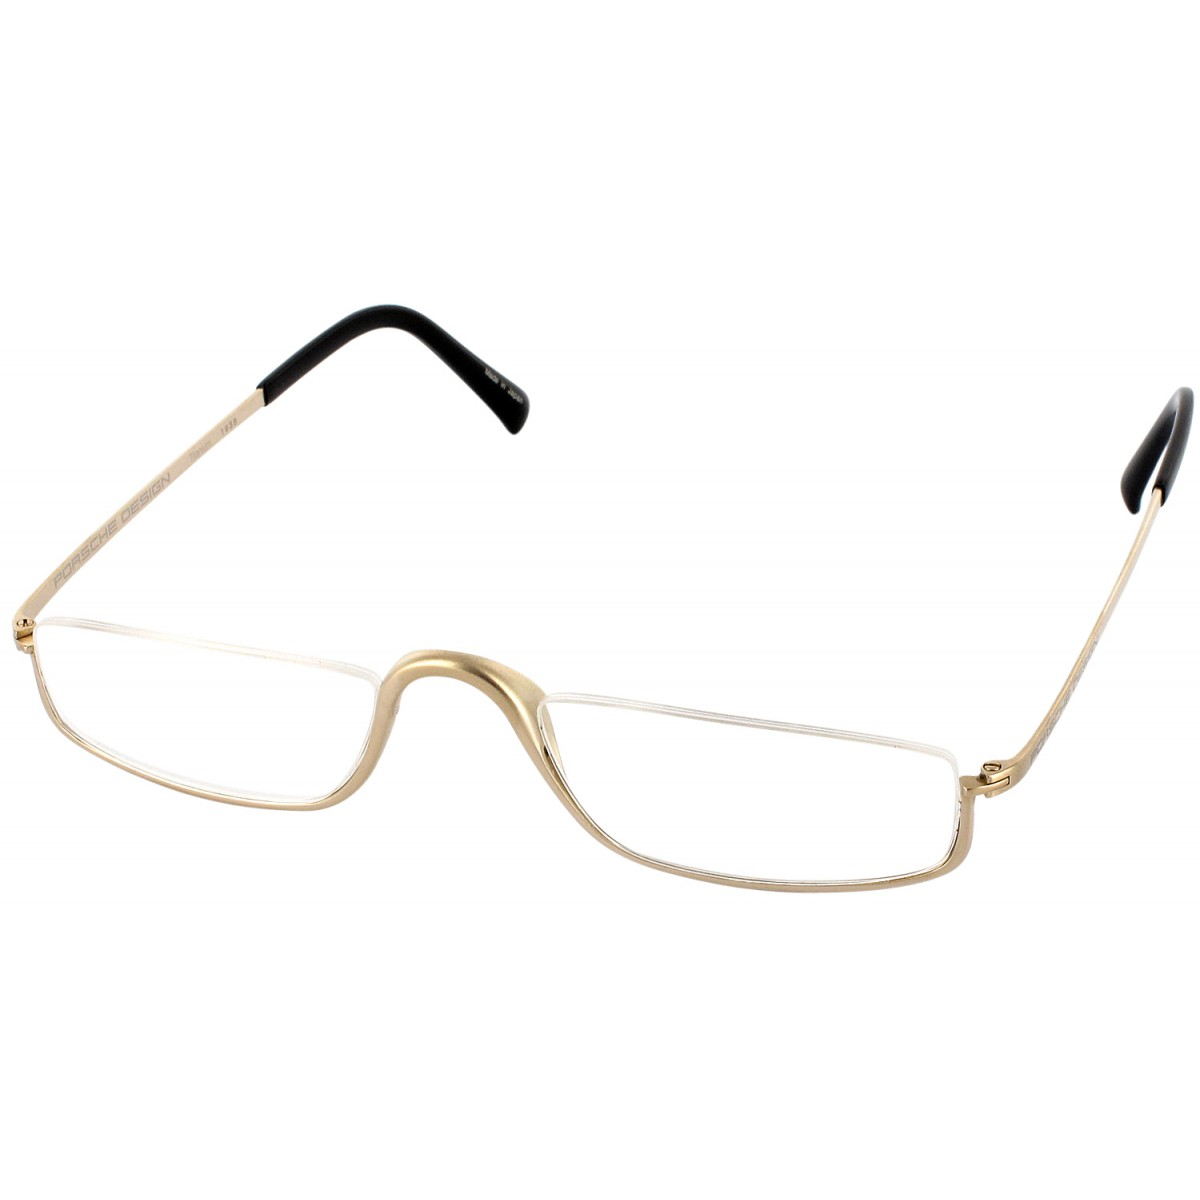 3d2170bf3cf1 Porsche Design 8002 Matte Gold Reading Glasses Price in Pakistan